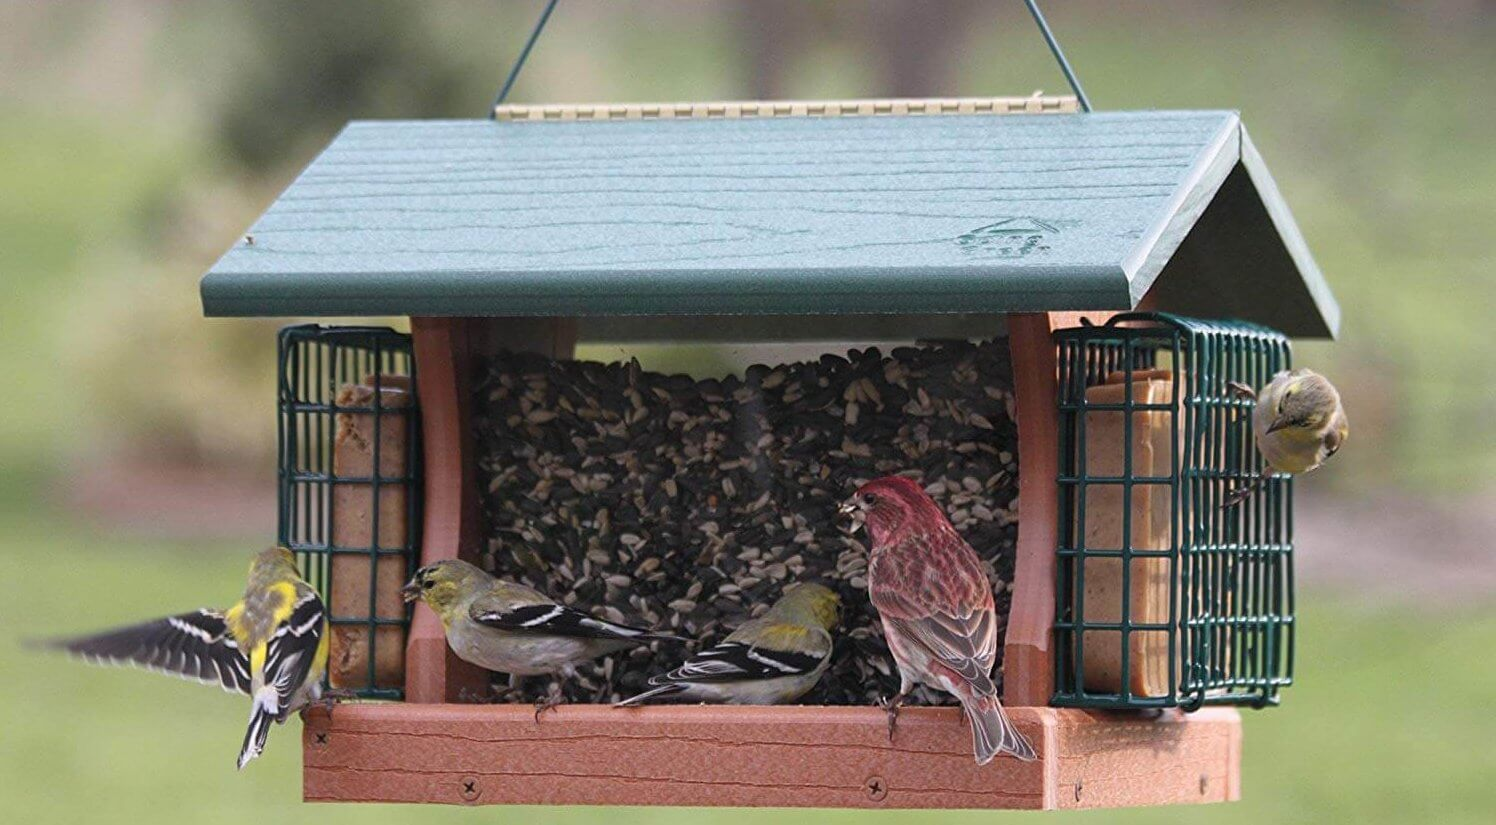 hopper feeder with suet cages attached to sides